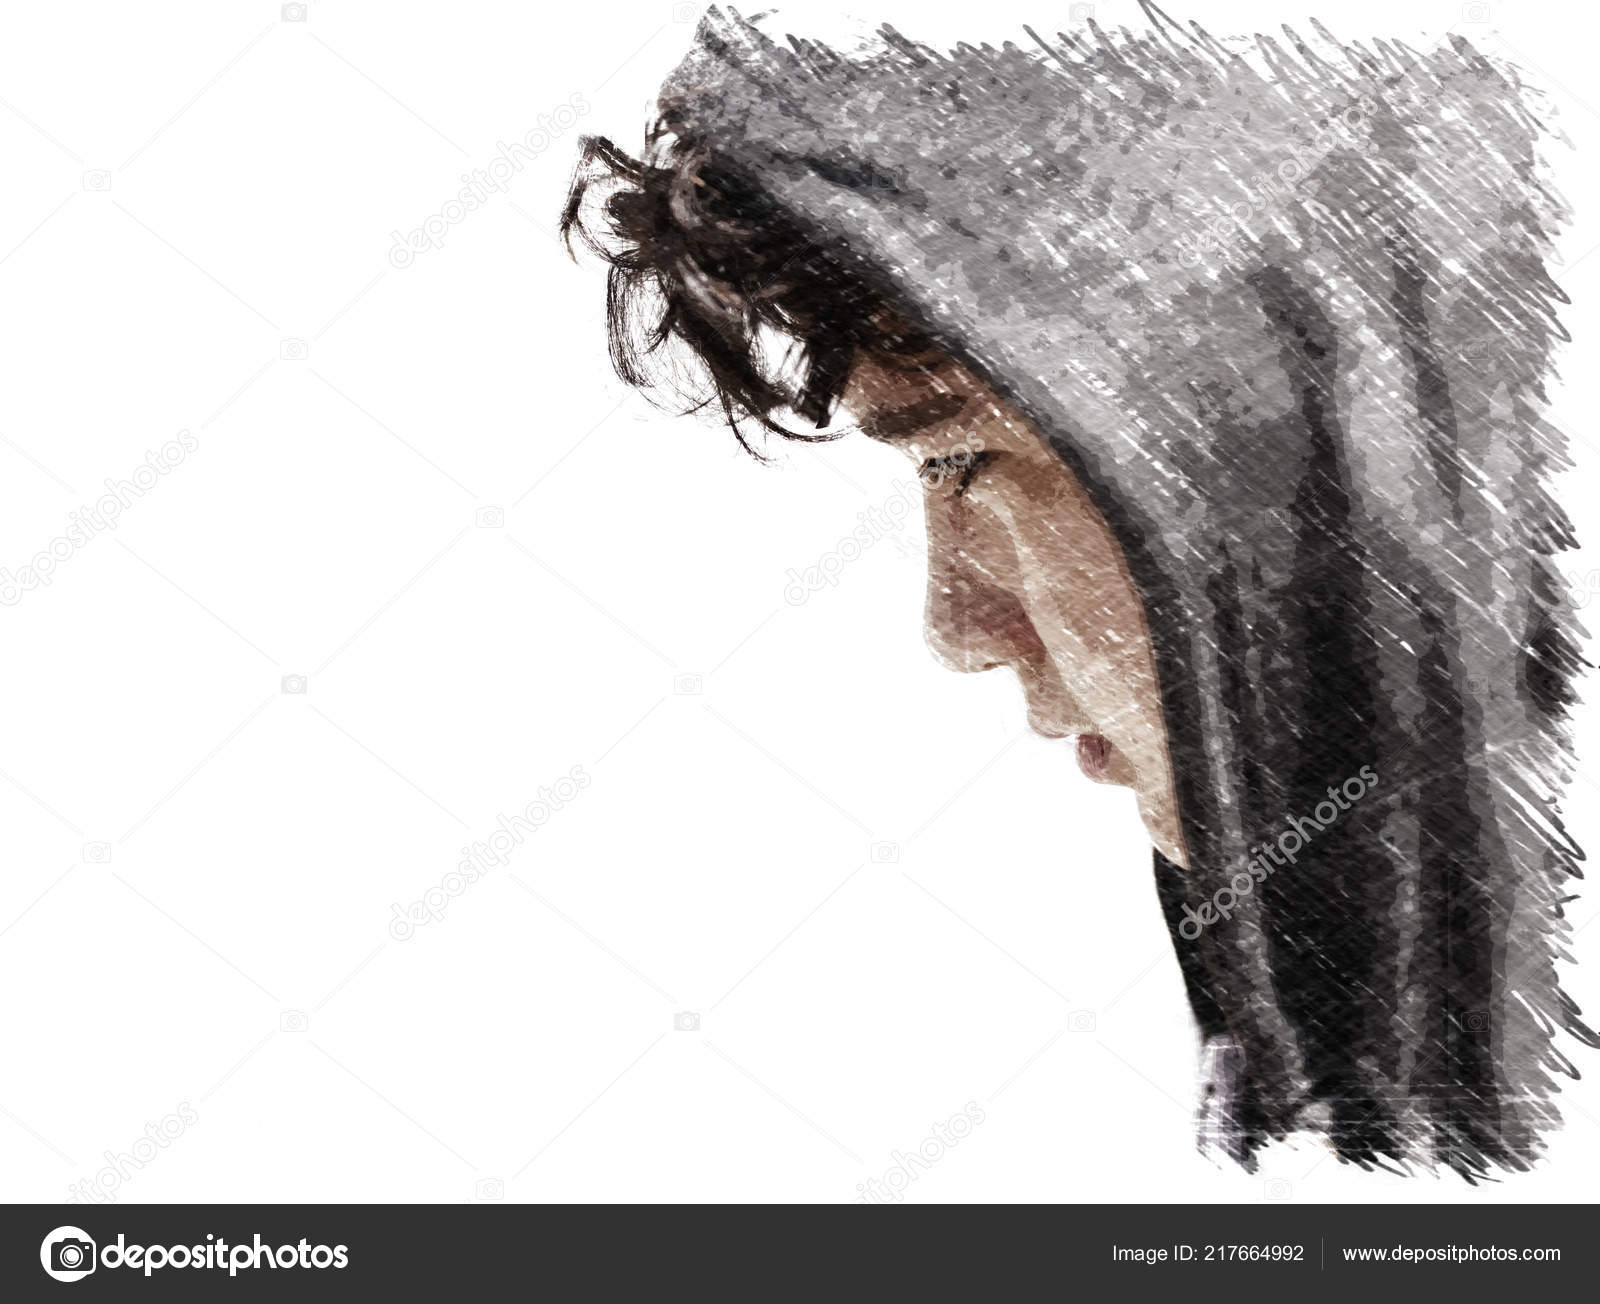 Sad troubled school boy teenager wearing a hoodie posing and thinking in his own thoughts close up charcoal sketch with copy space for writing photo by